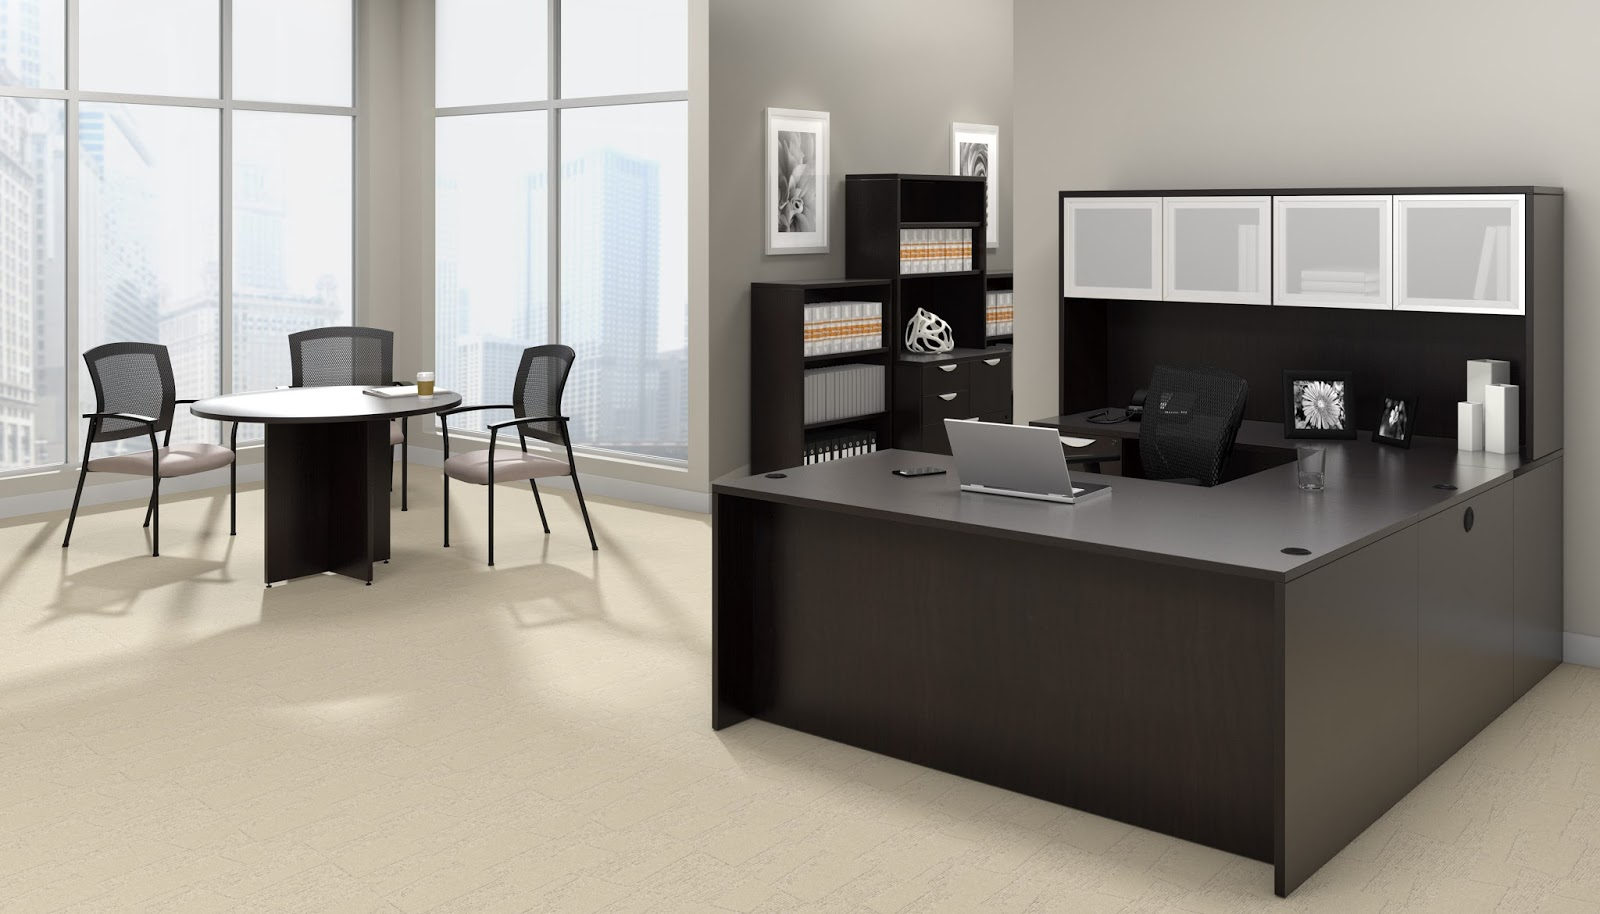 The Office Furniture Blog At These Executive Interiors Will Inspire Your